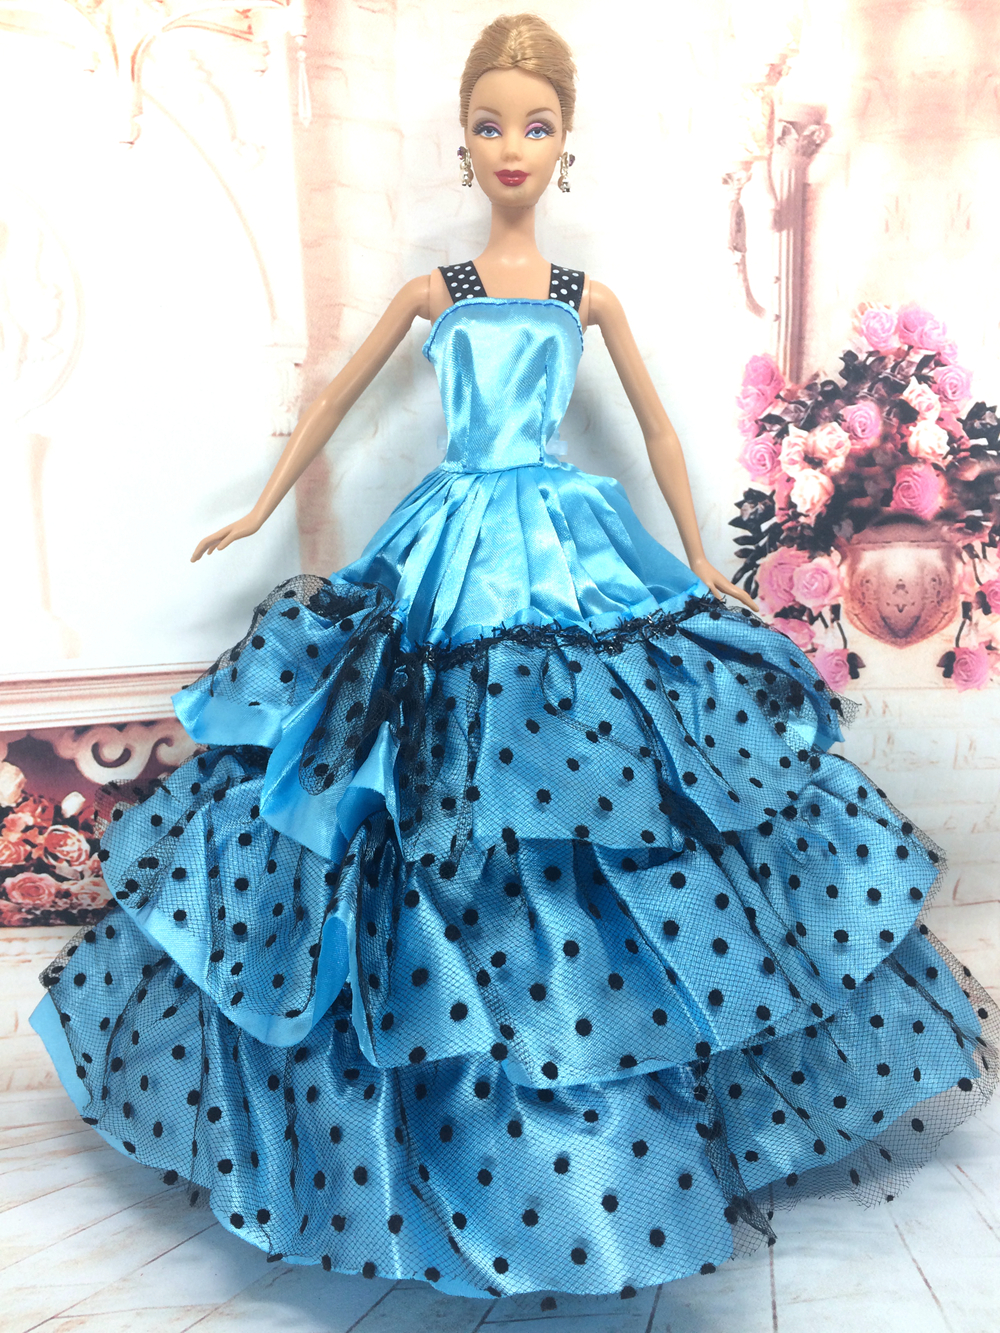 NK One Pcs Handmade Princess Wedding Dress Noble Party Gown For Barbie Doll Fashion Design Outfit Best Gift For Girl Doll 054B